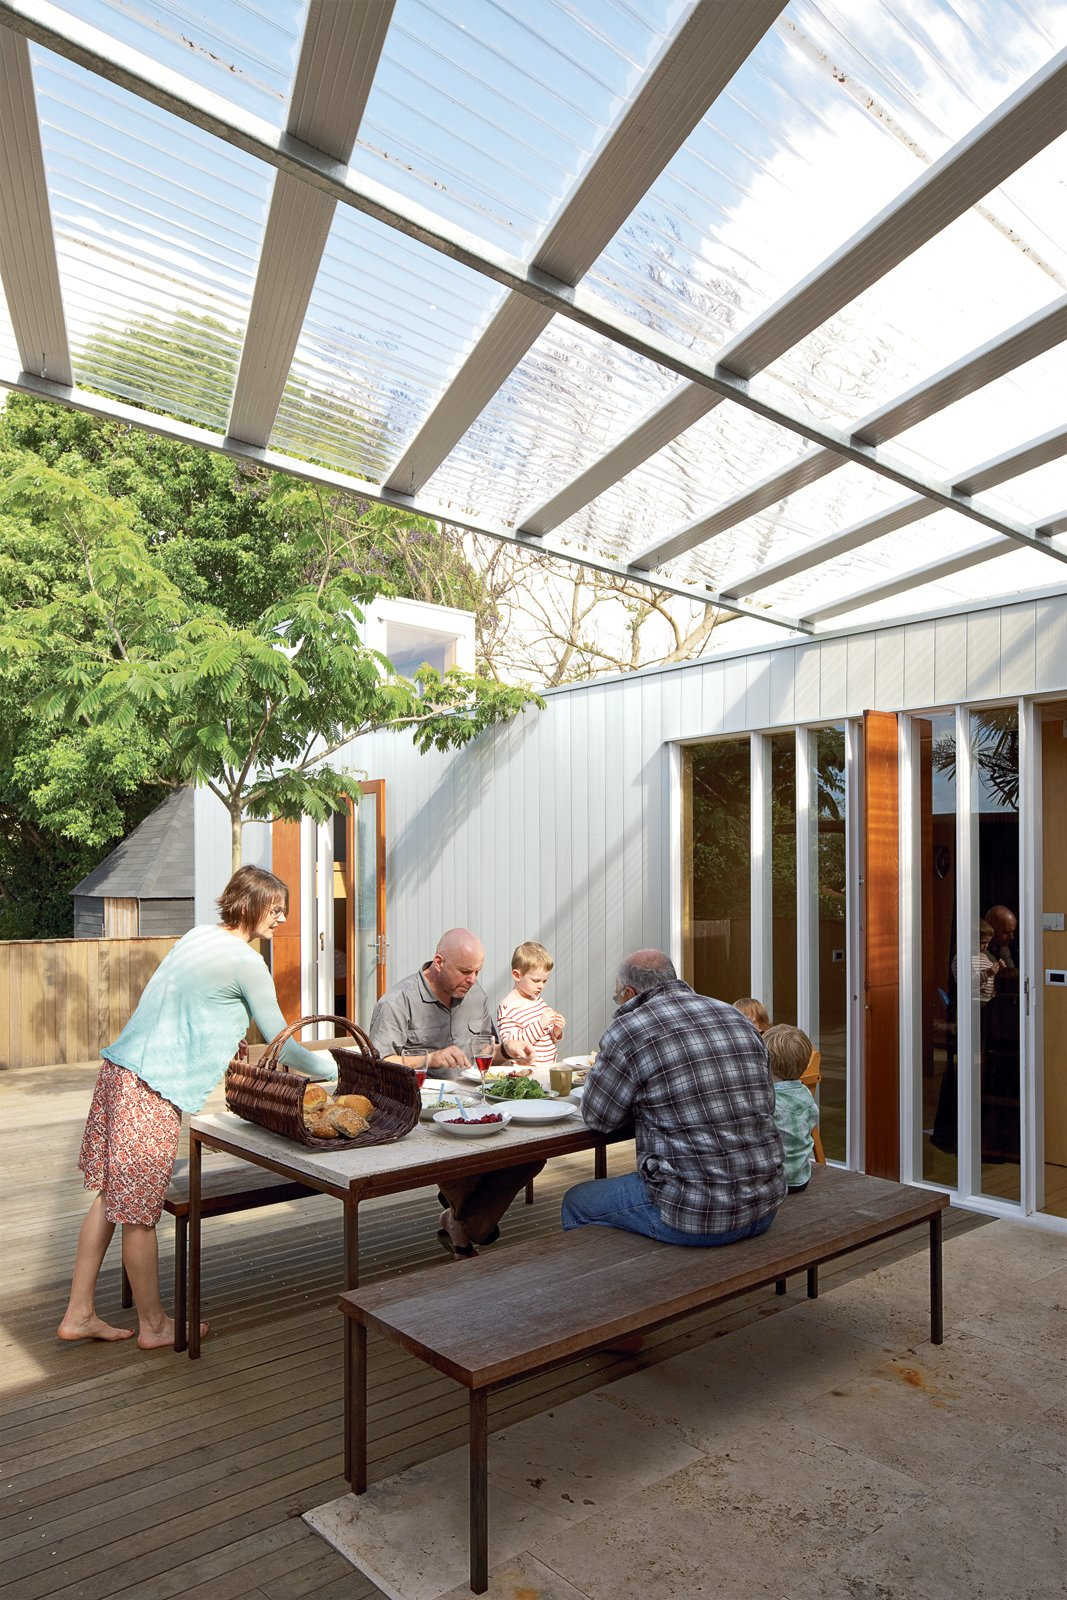 The family shares an alfresco lunch with Ikimau Ikimau, a friendly neighbor who helped build the house. The aluminum weatherboard cladding was custom-designed by O'Sullivan. Tagged: Outdoor and Wood Patio, Porch, Deck.  Photo 11 of 11 in The Great Compression